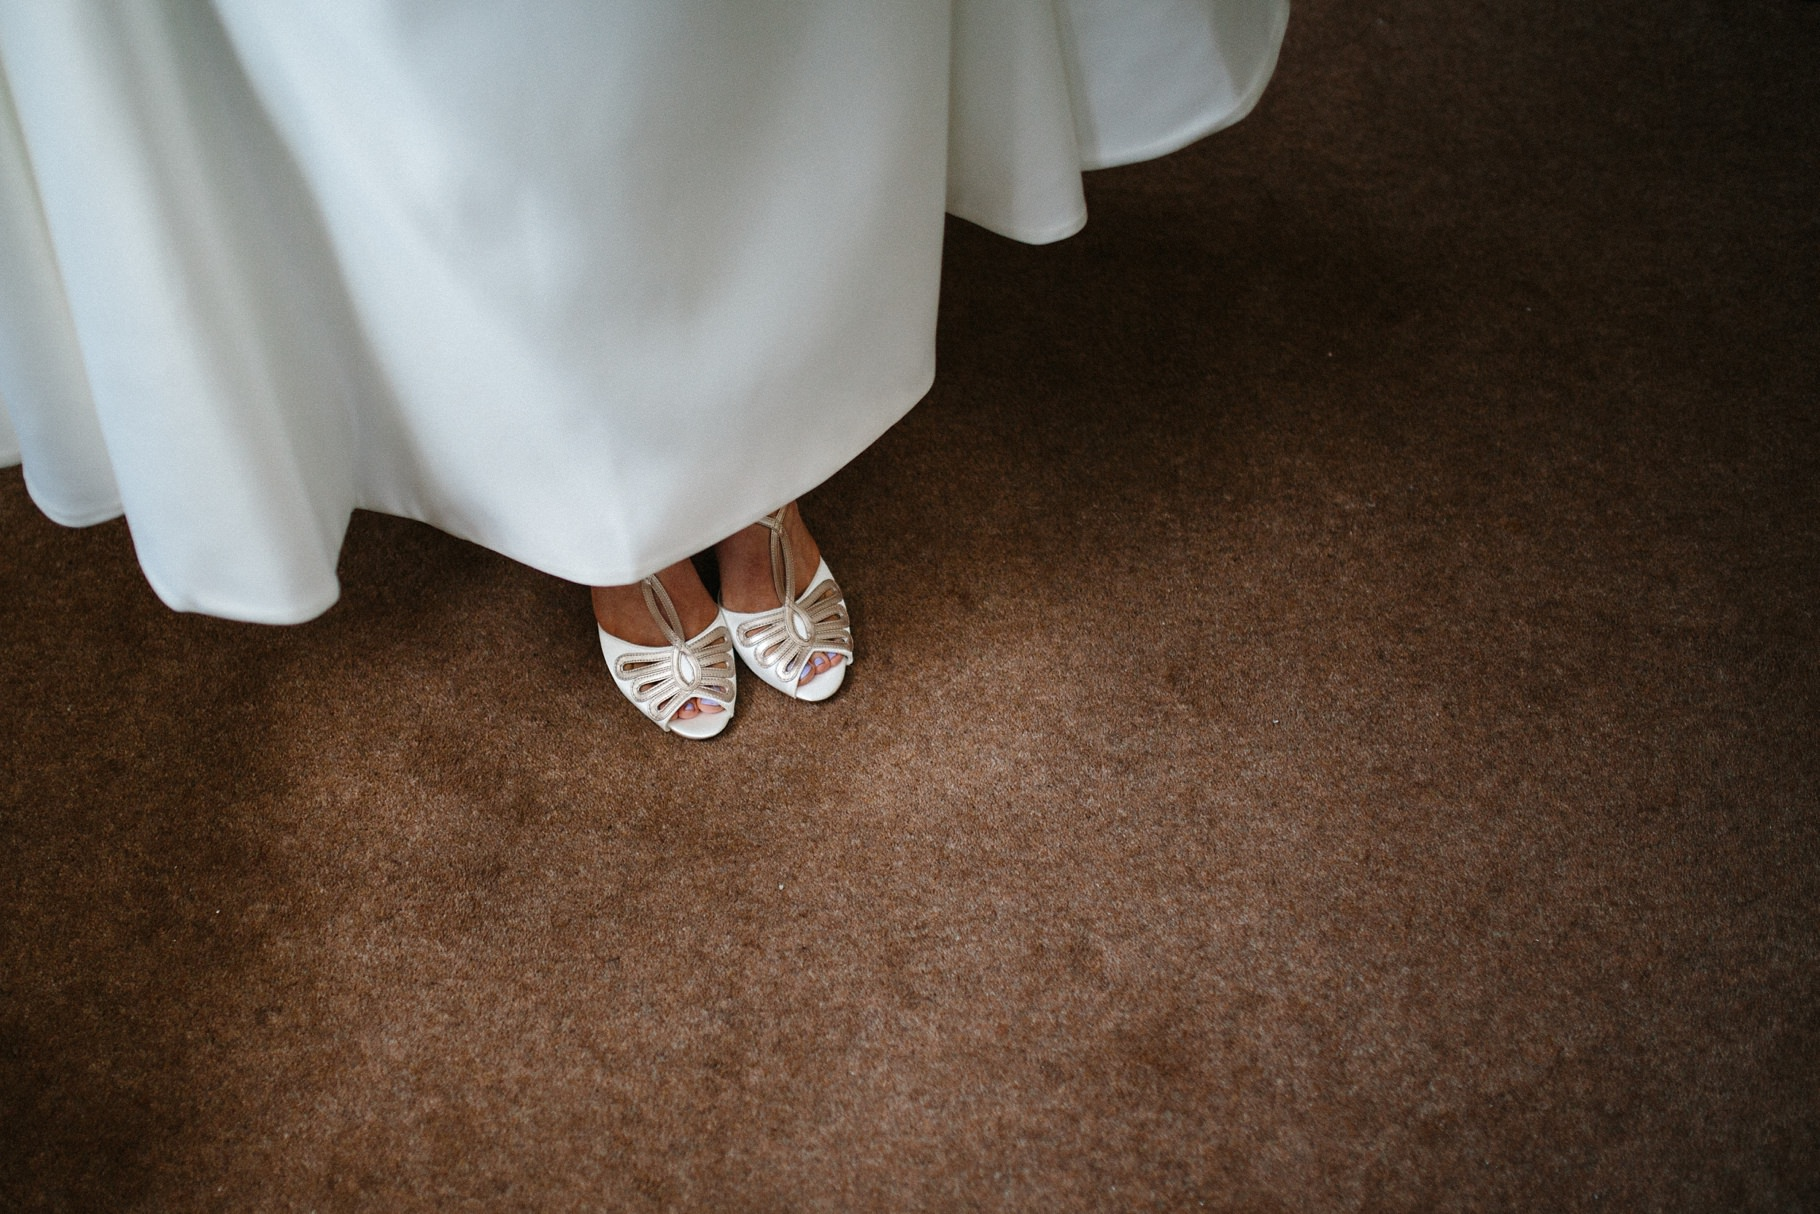 We_Can _ Be_Heroes_Photography_Derry_Donegal_Wedding_0354